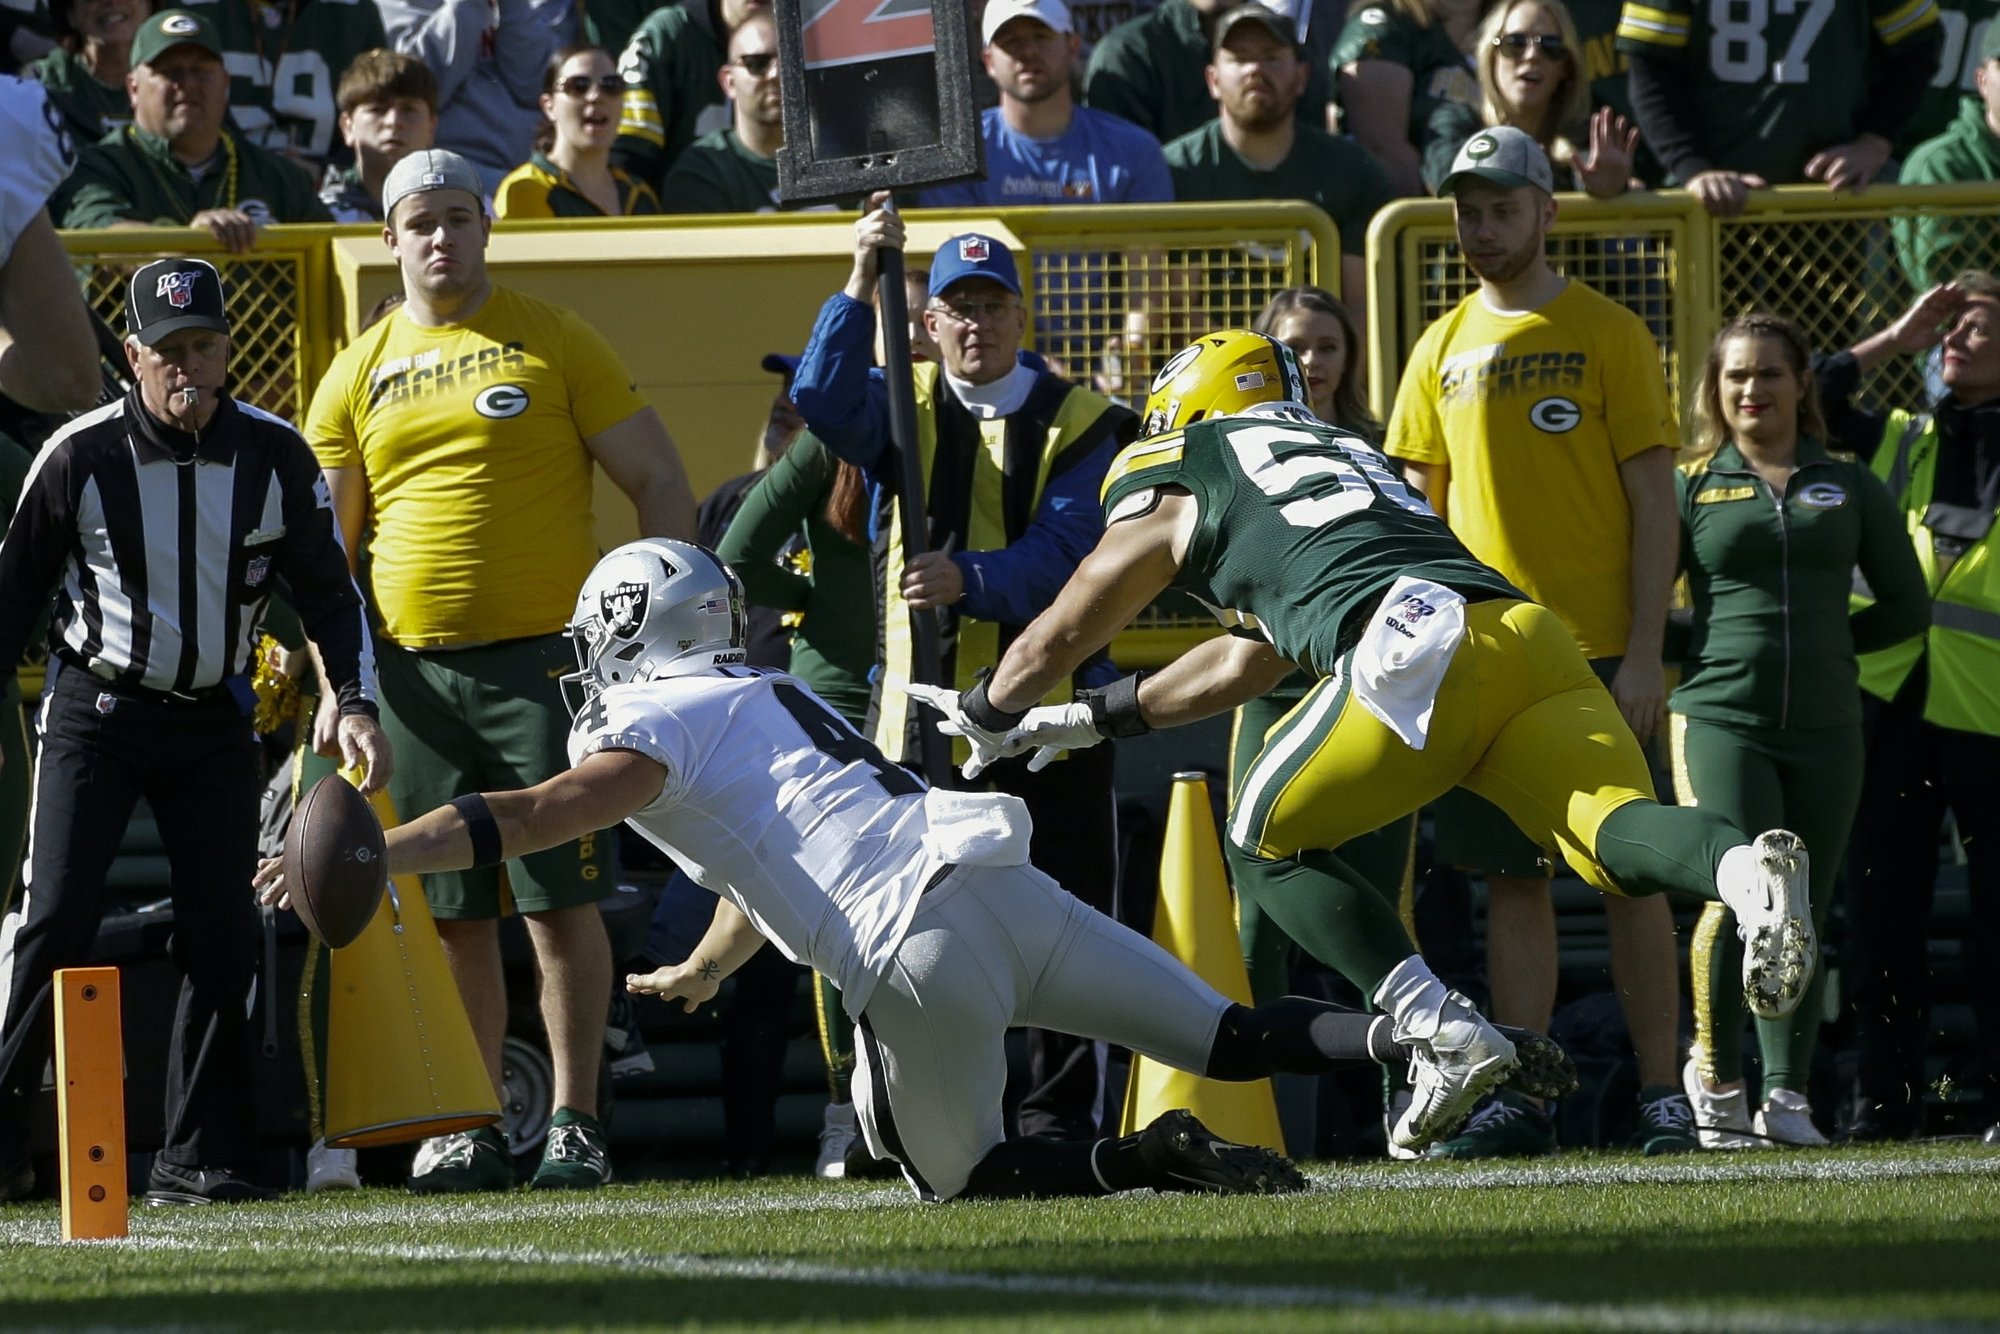 Derek Carr's fumble opens floodgates for Rodgers' 6-TD day